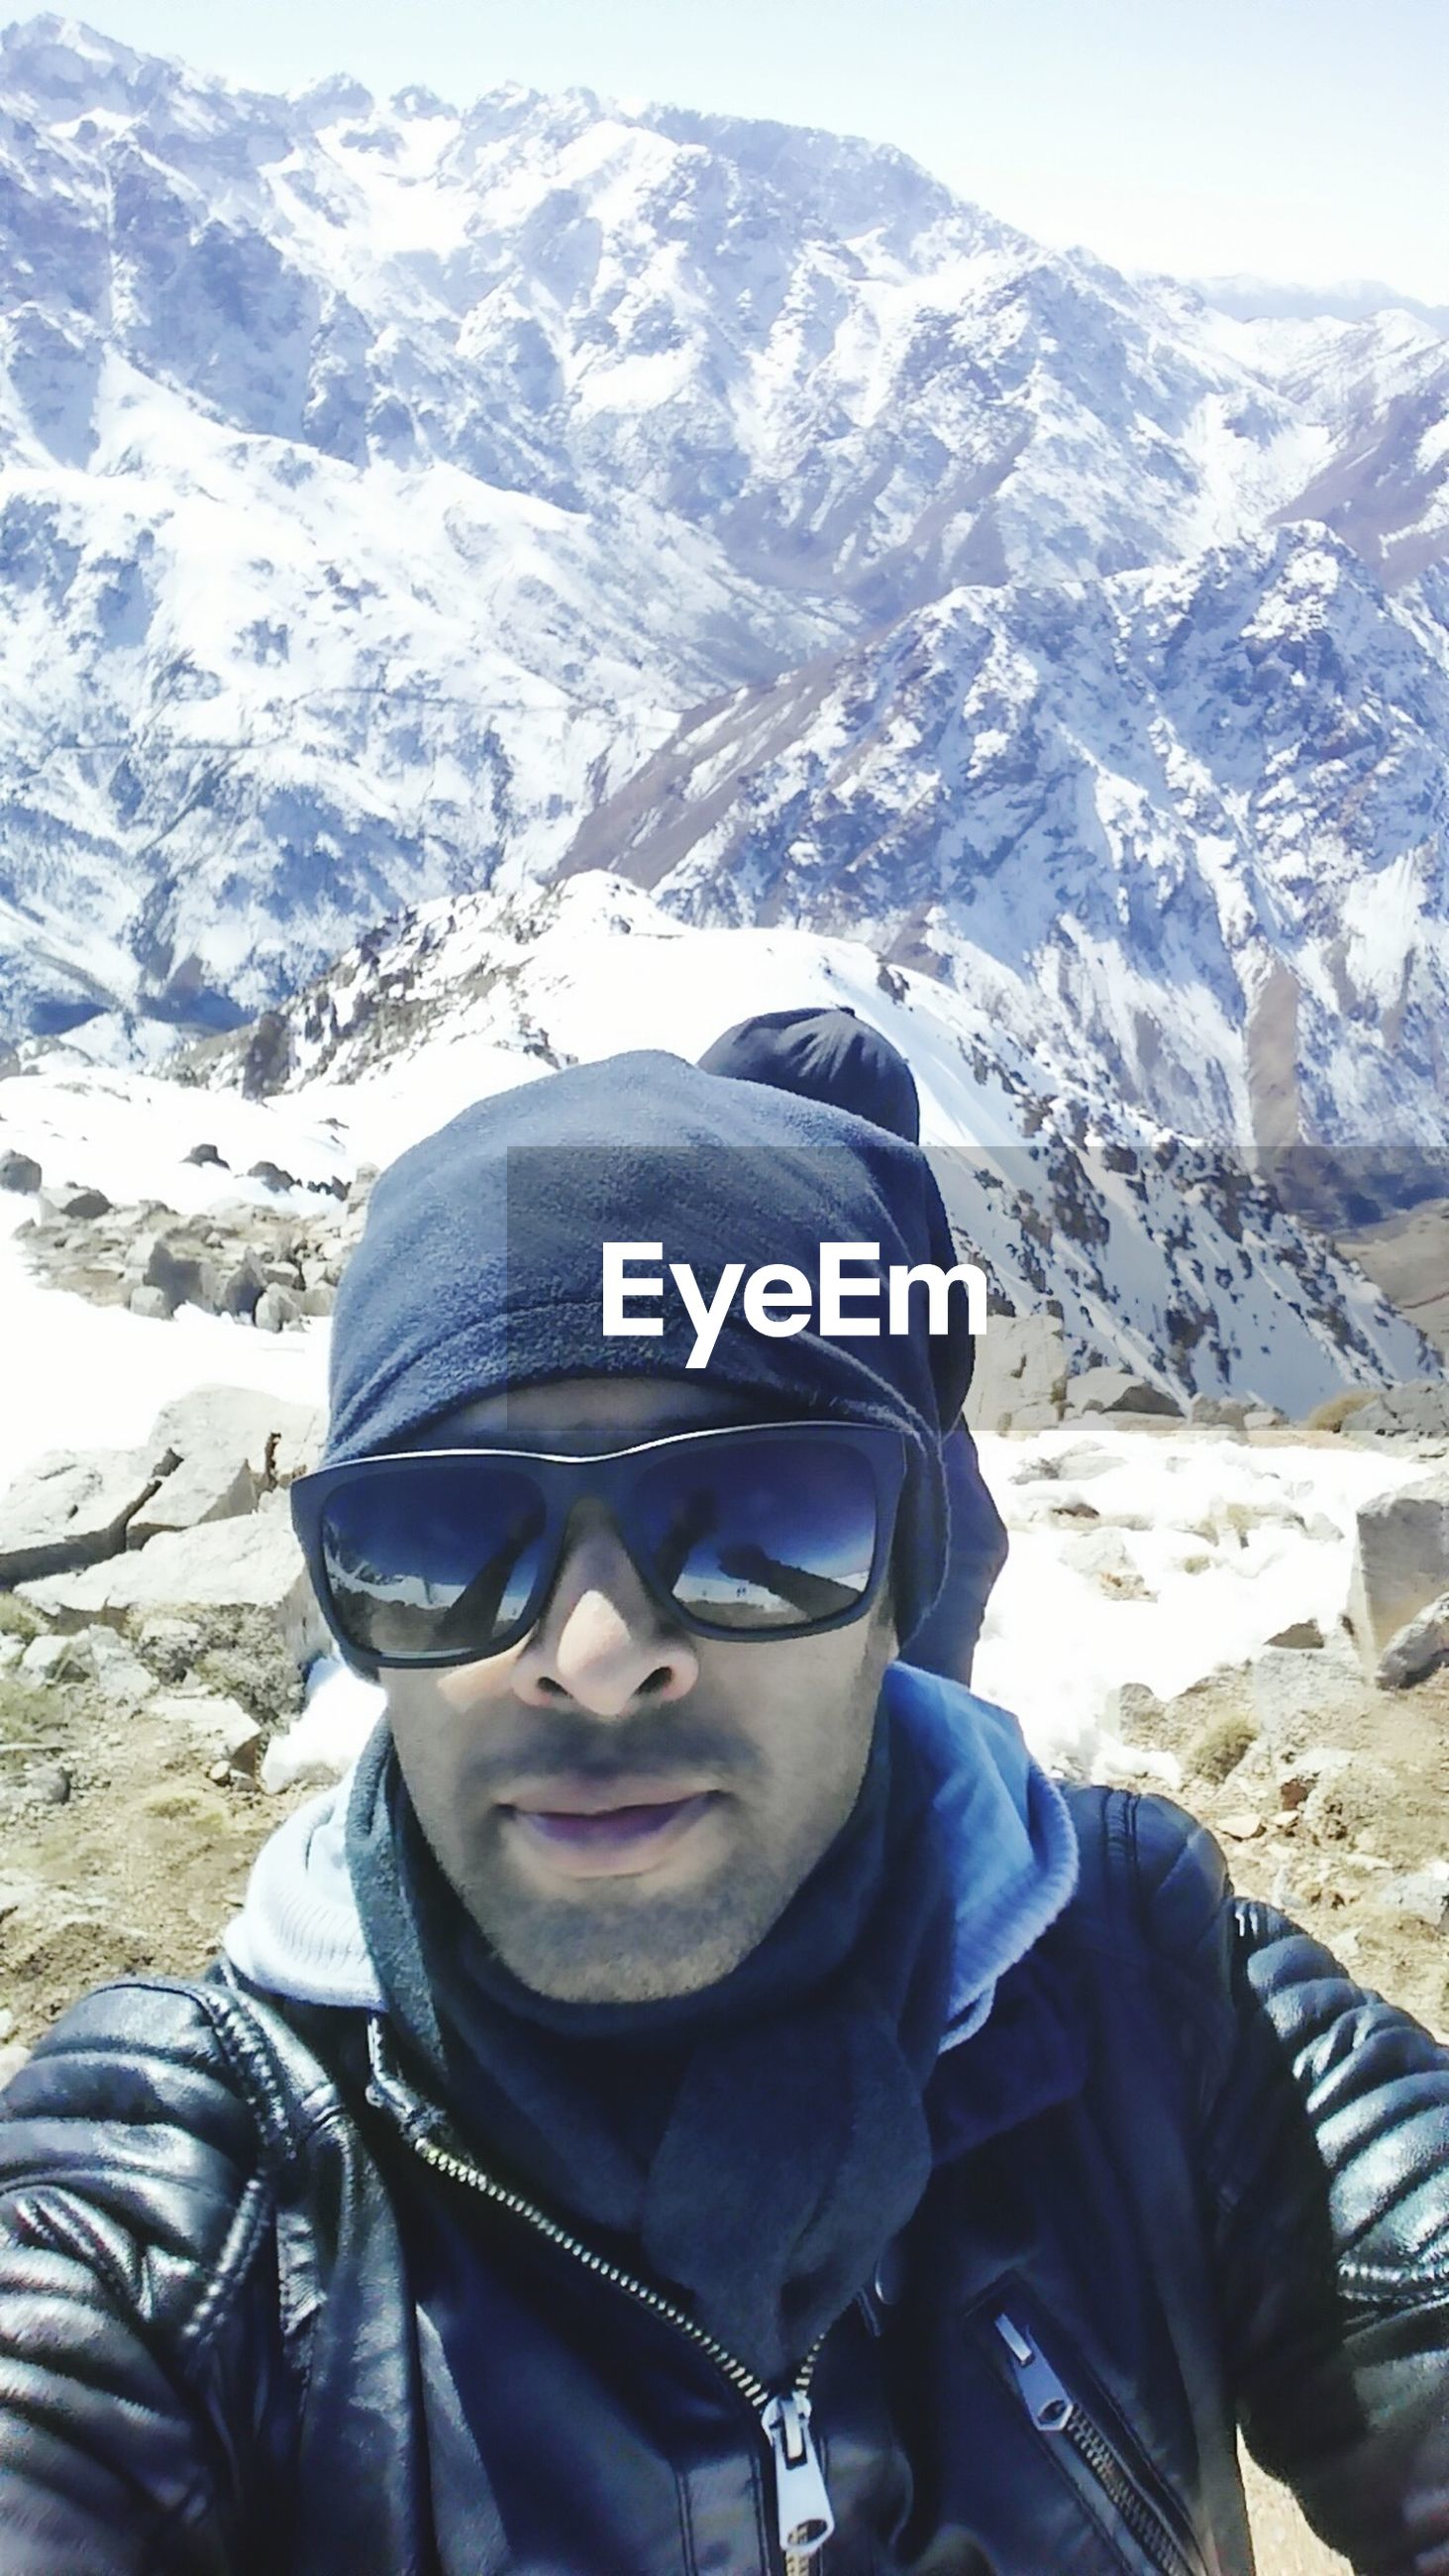 winter, mountain, cold temperature, snow, lifestyles, leisure activity, warm clothing, young adult, headshot, mountain range, season, young men, looking at camera, portrait, person, sunglasses, men, casual clothing